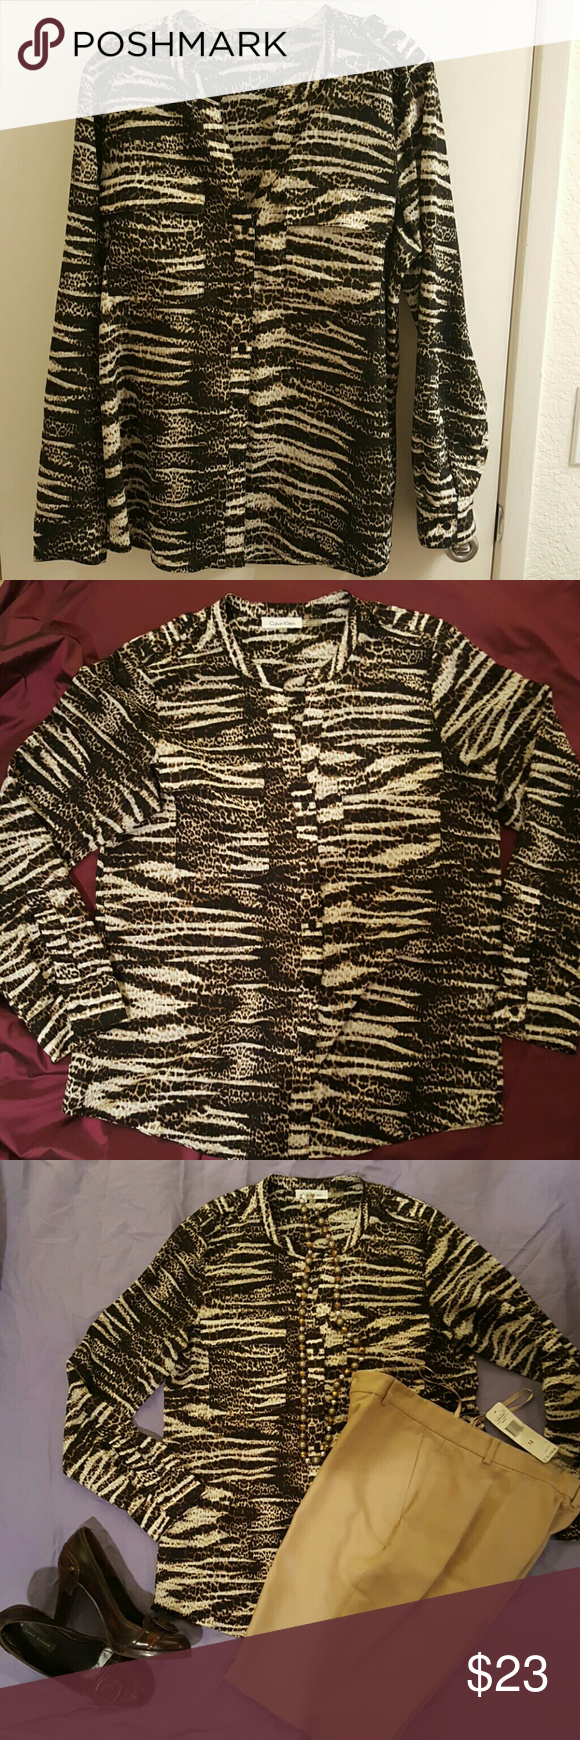 Calvin Klein animal print blouse, size large Browns and cream colored animal print blouse, to wear at work  and ready for after work. Two front pockets, sleeves roll up and cam be attached in place with attached strap and button. Calvin Klein Tops Blouses